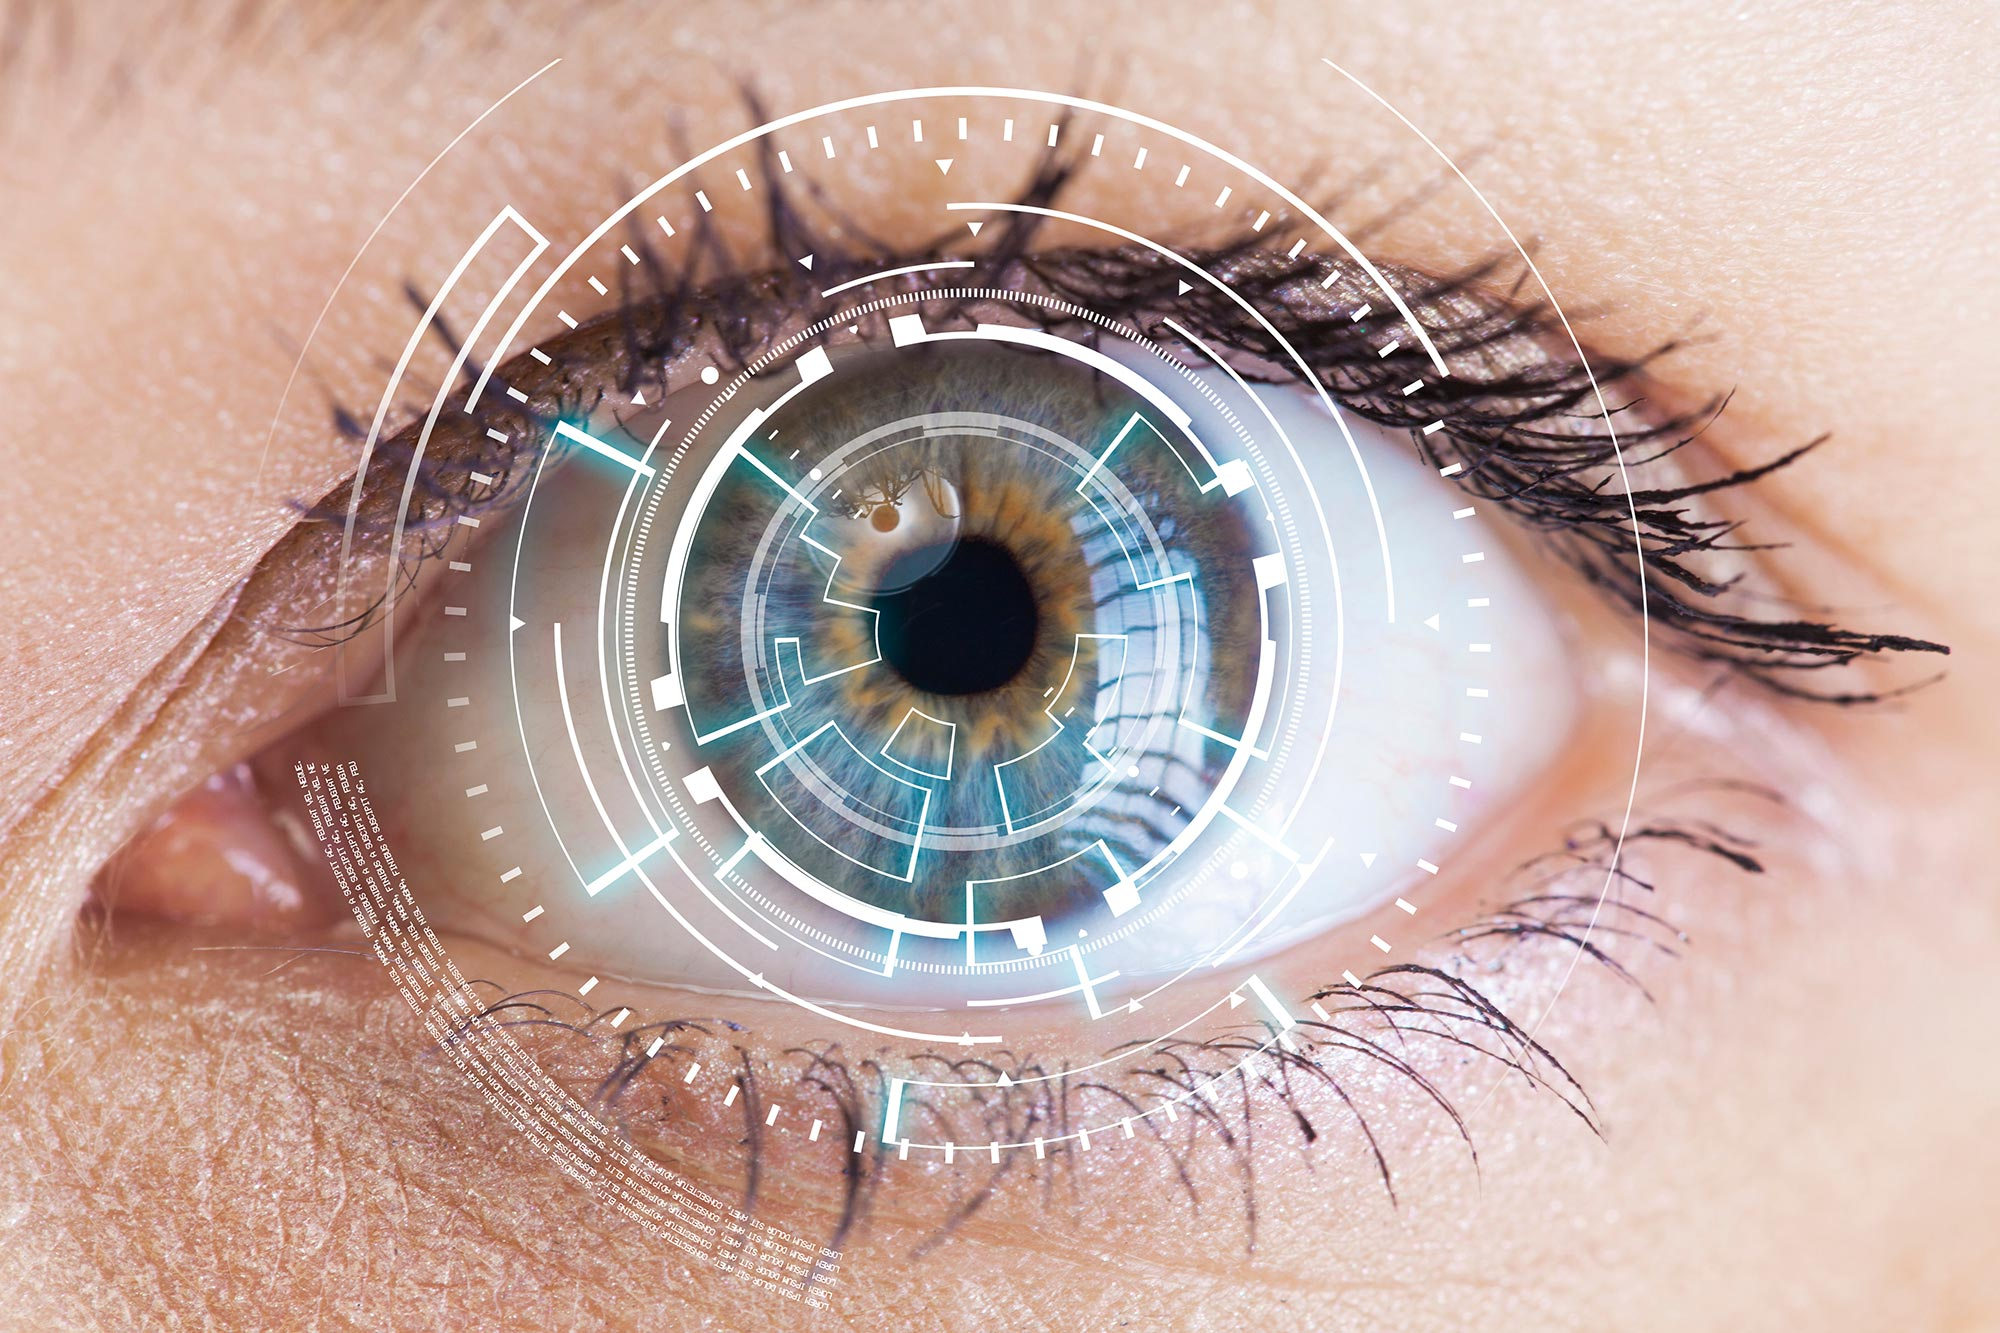 Researchers Use Eye Tracking to Discover How Mobile Apps